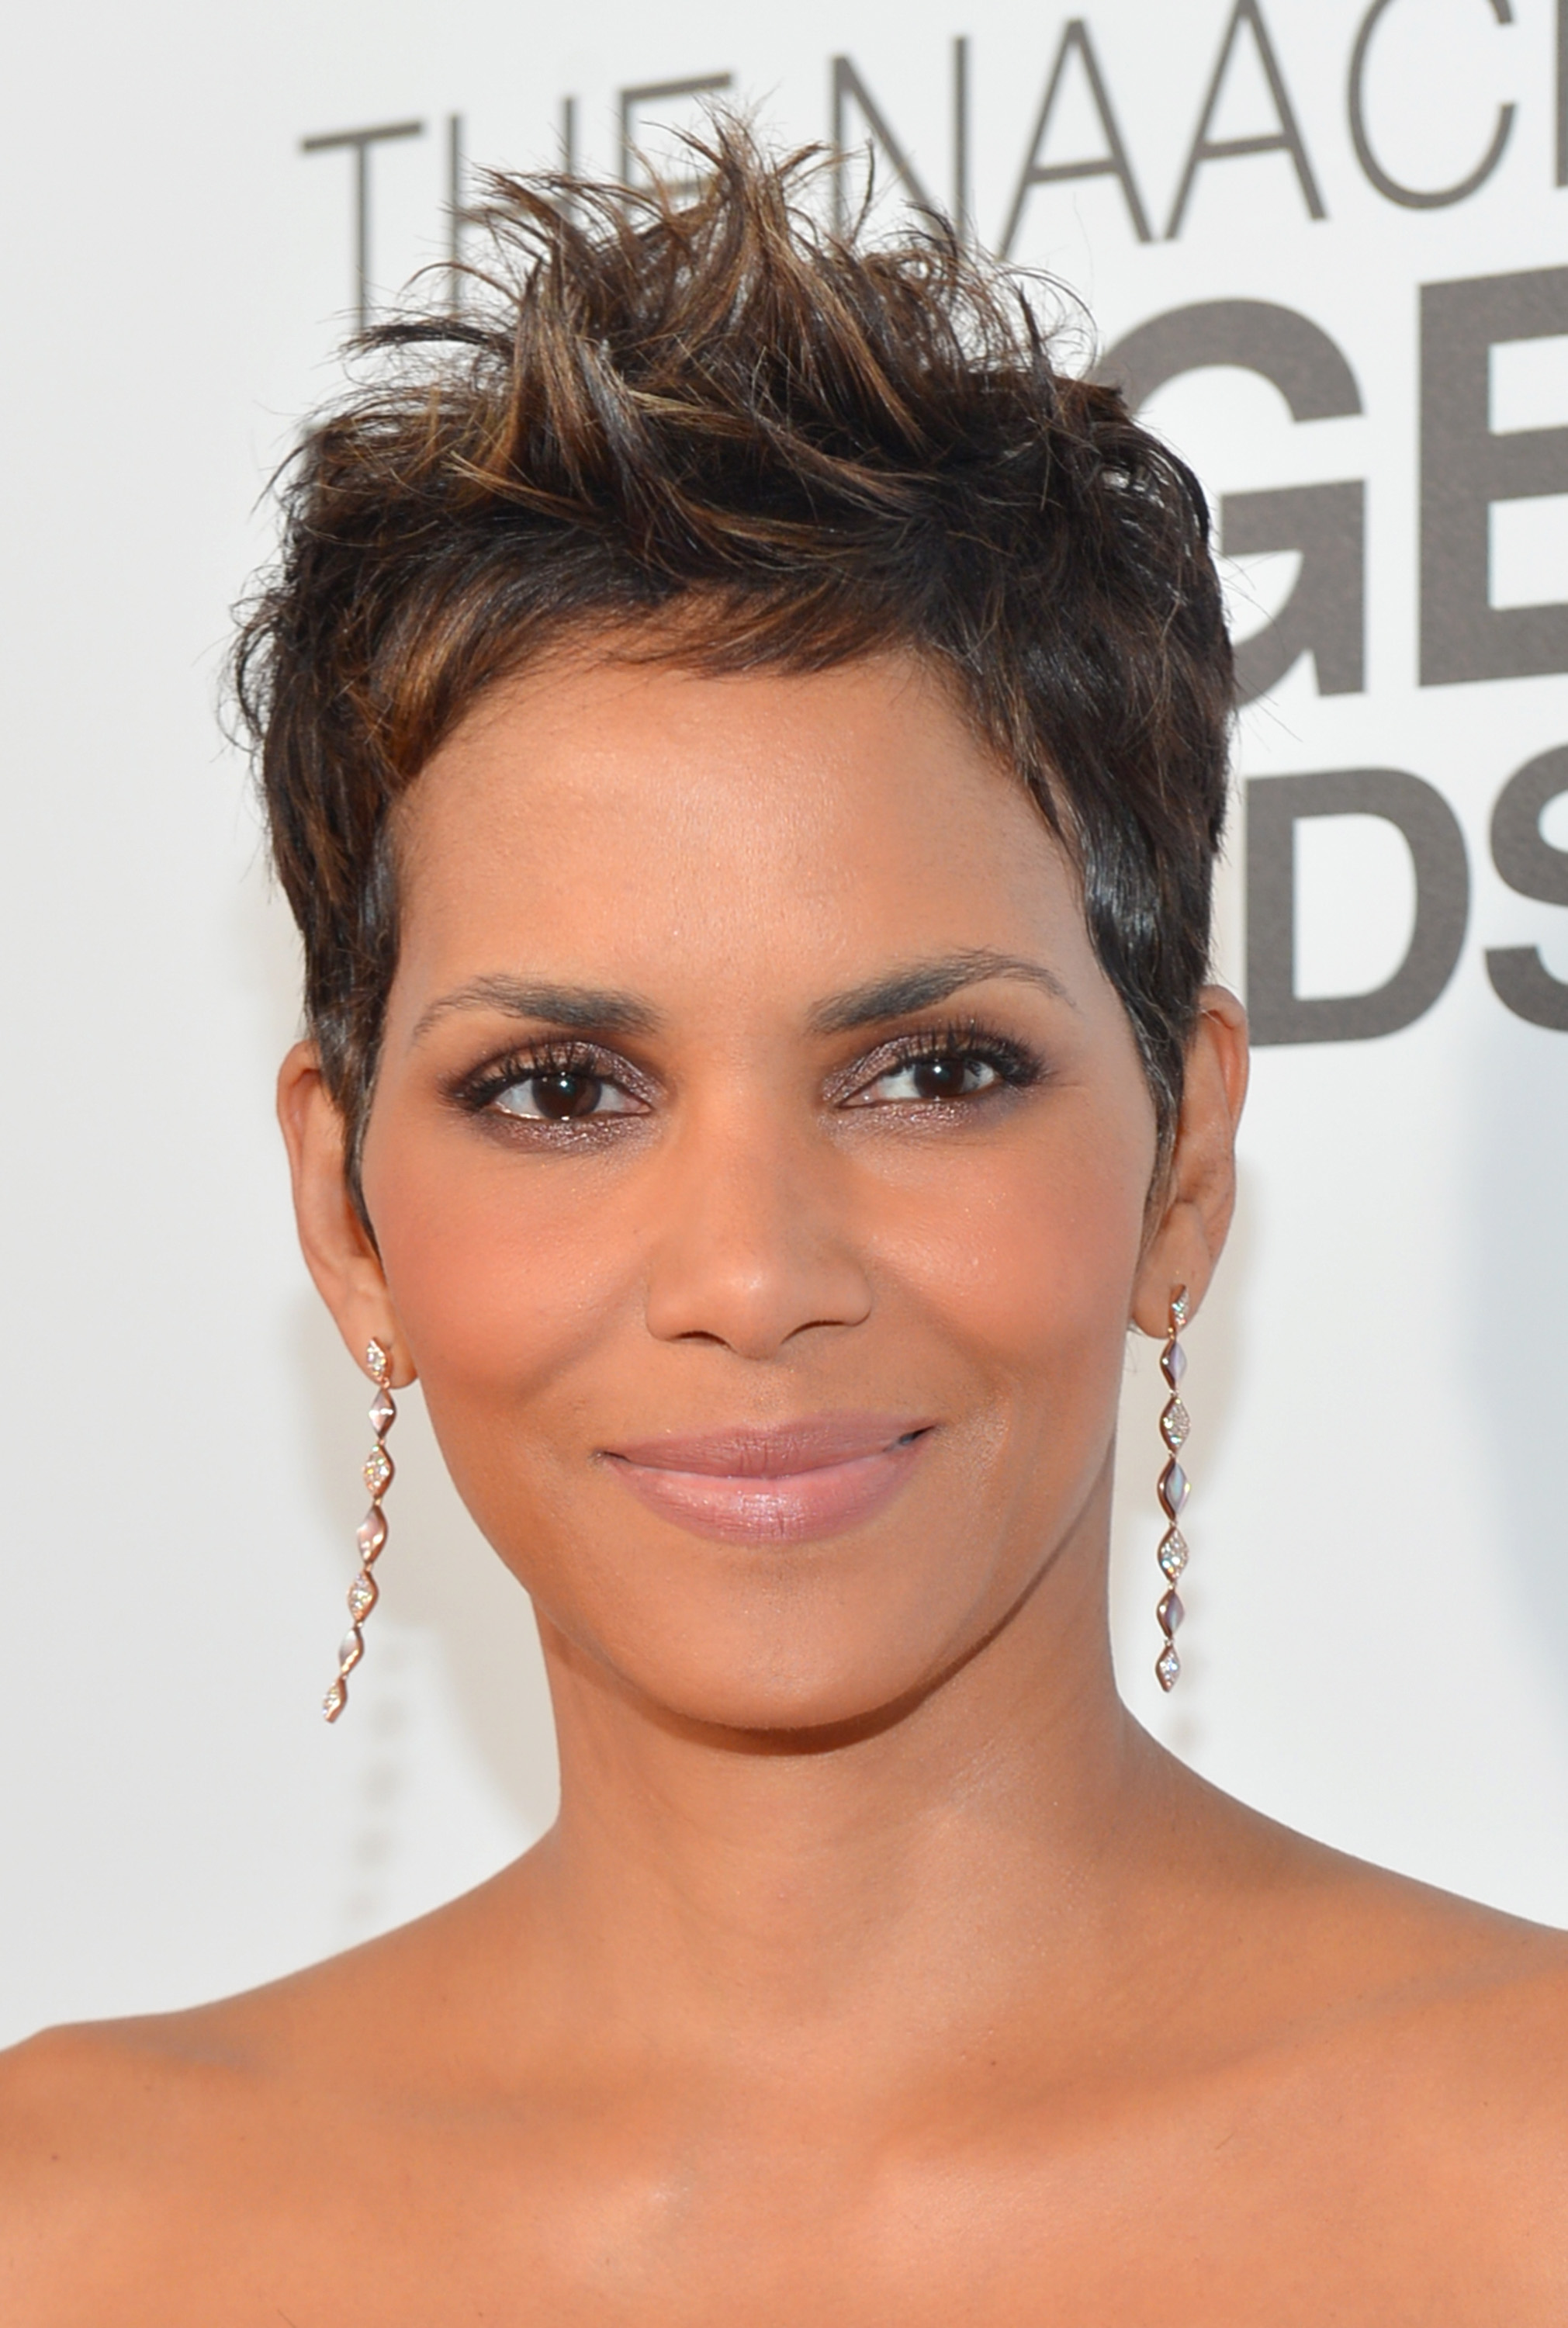 Remarkable 45 Black Hairstyles For Short Hair Short Haircuts For Black Women Short Hairstyles Gunalazisus